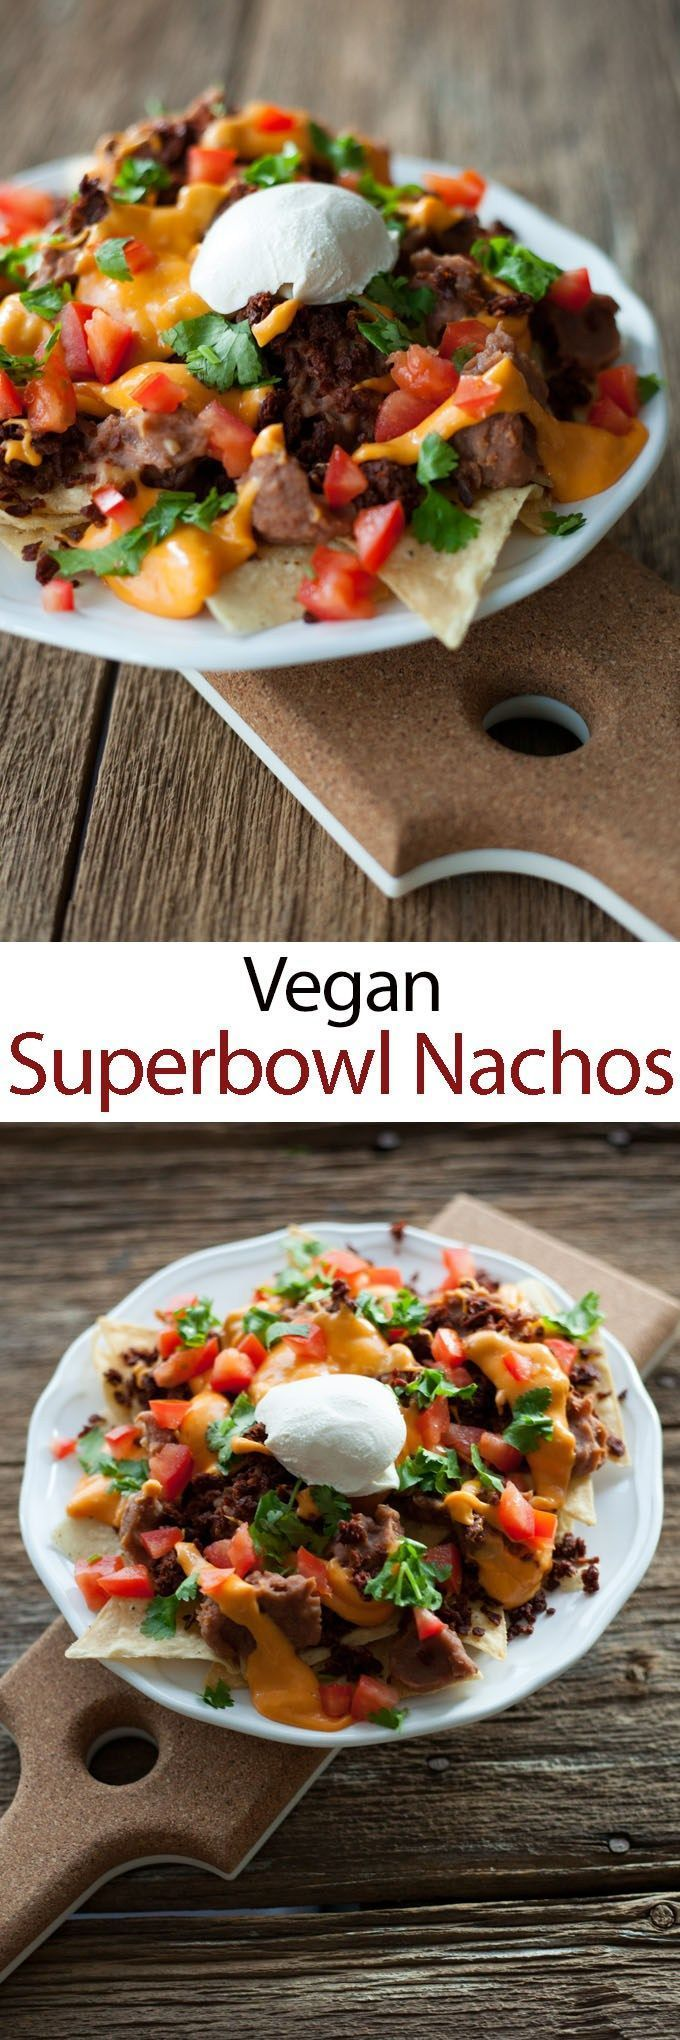 Easy vegan nacho recipe for Monday night foot ball or your Super Bowl party! Easy, cheesy and yummy! VEGAN